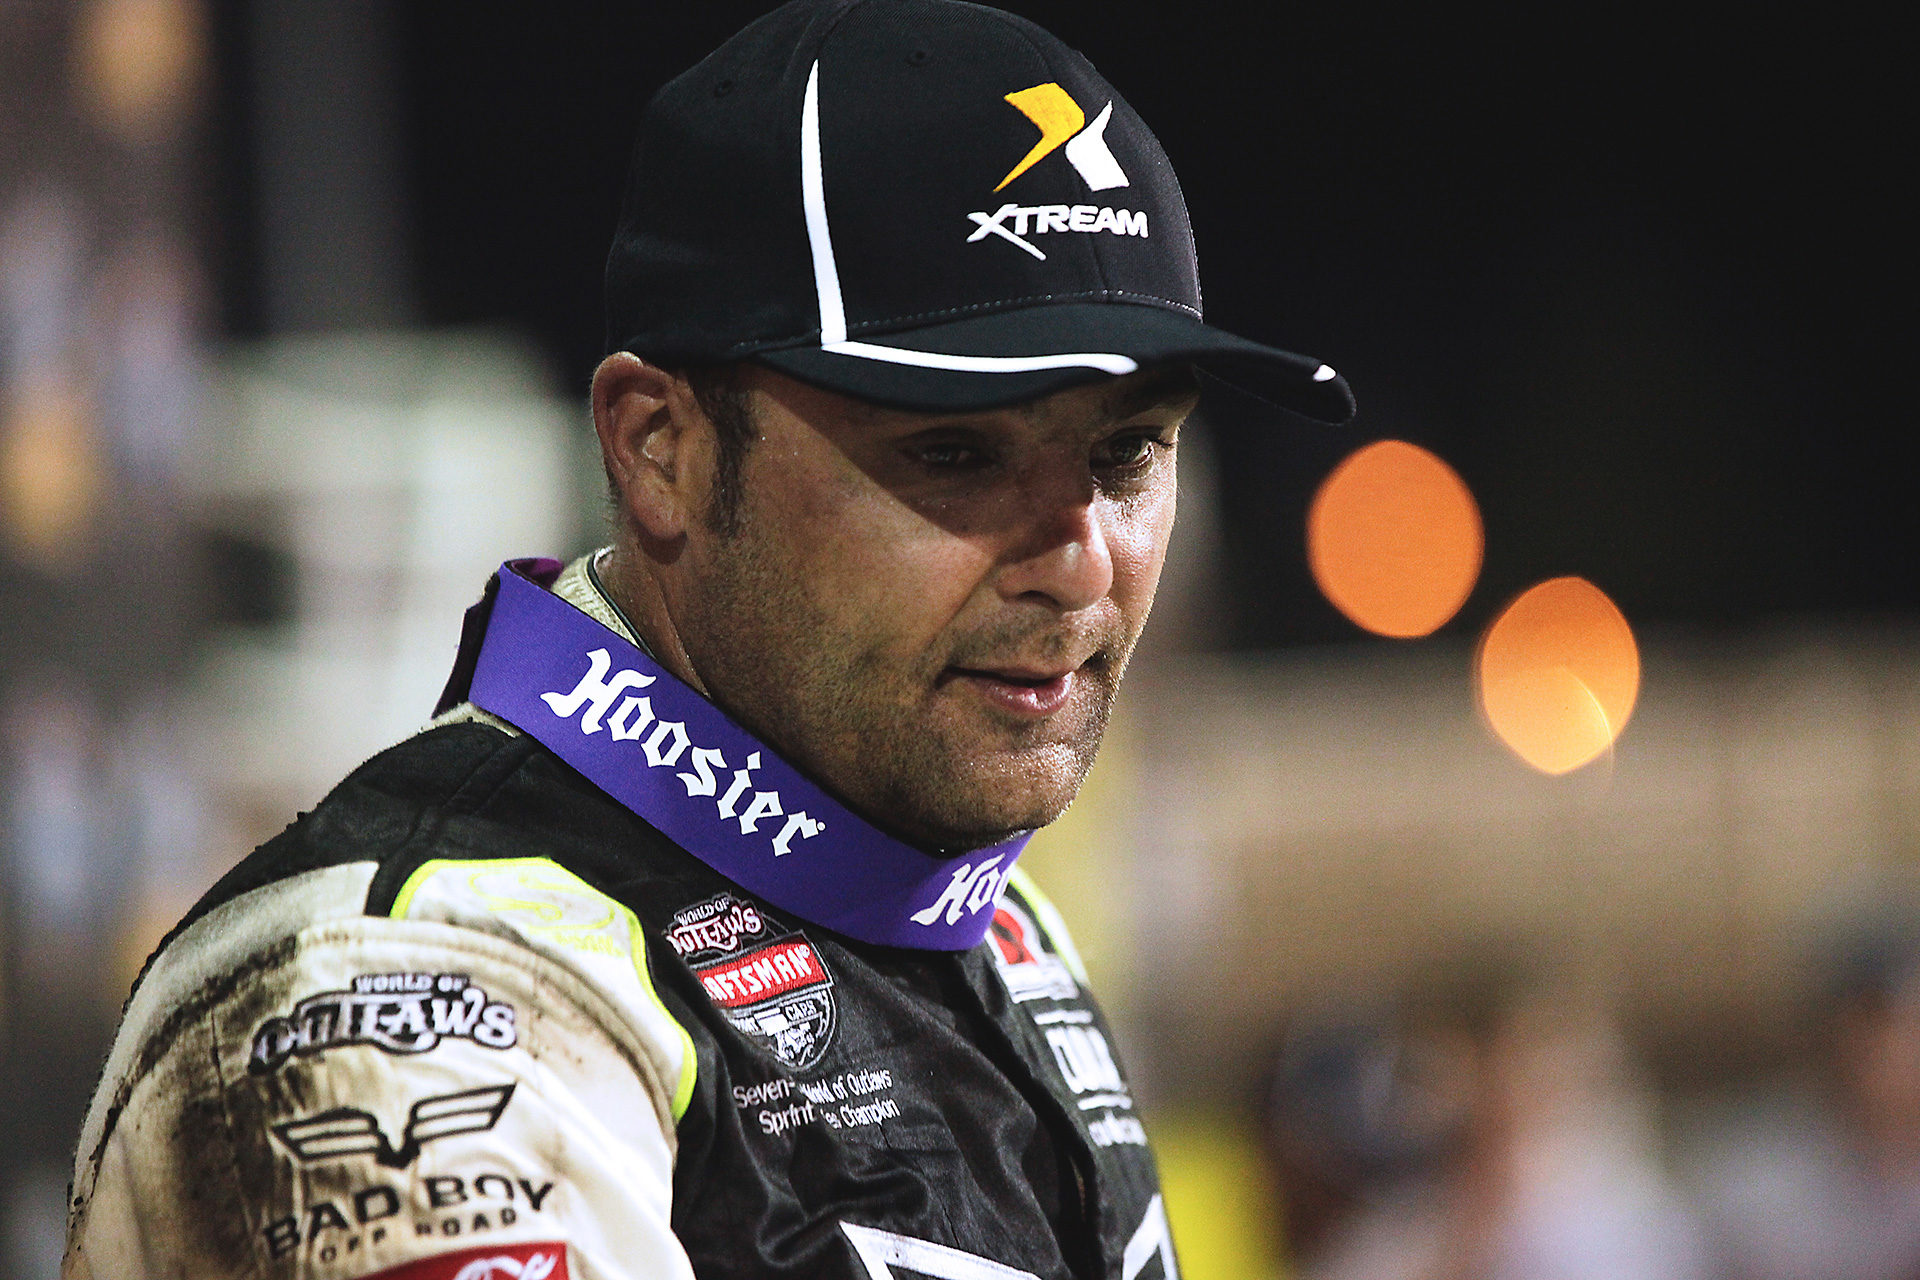 Donny Schatz in Knoxville Raceway victory lane. Schatz had a very productive weekend at Knoxville. Friday night he placed 2nd and Saturday night he got the win off a late race pass. ( Jeffrey Turford / TDP )